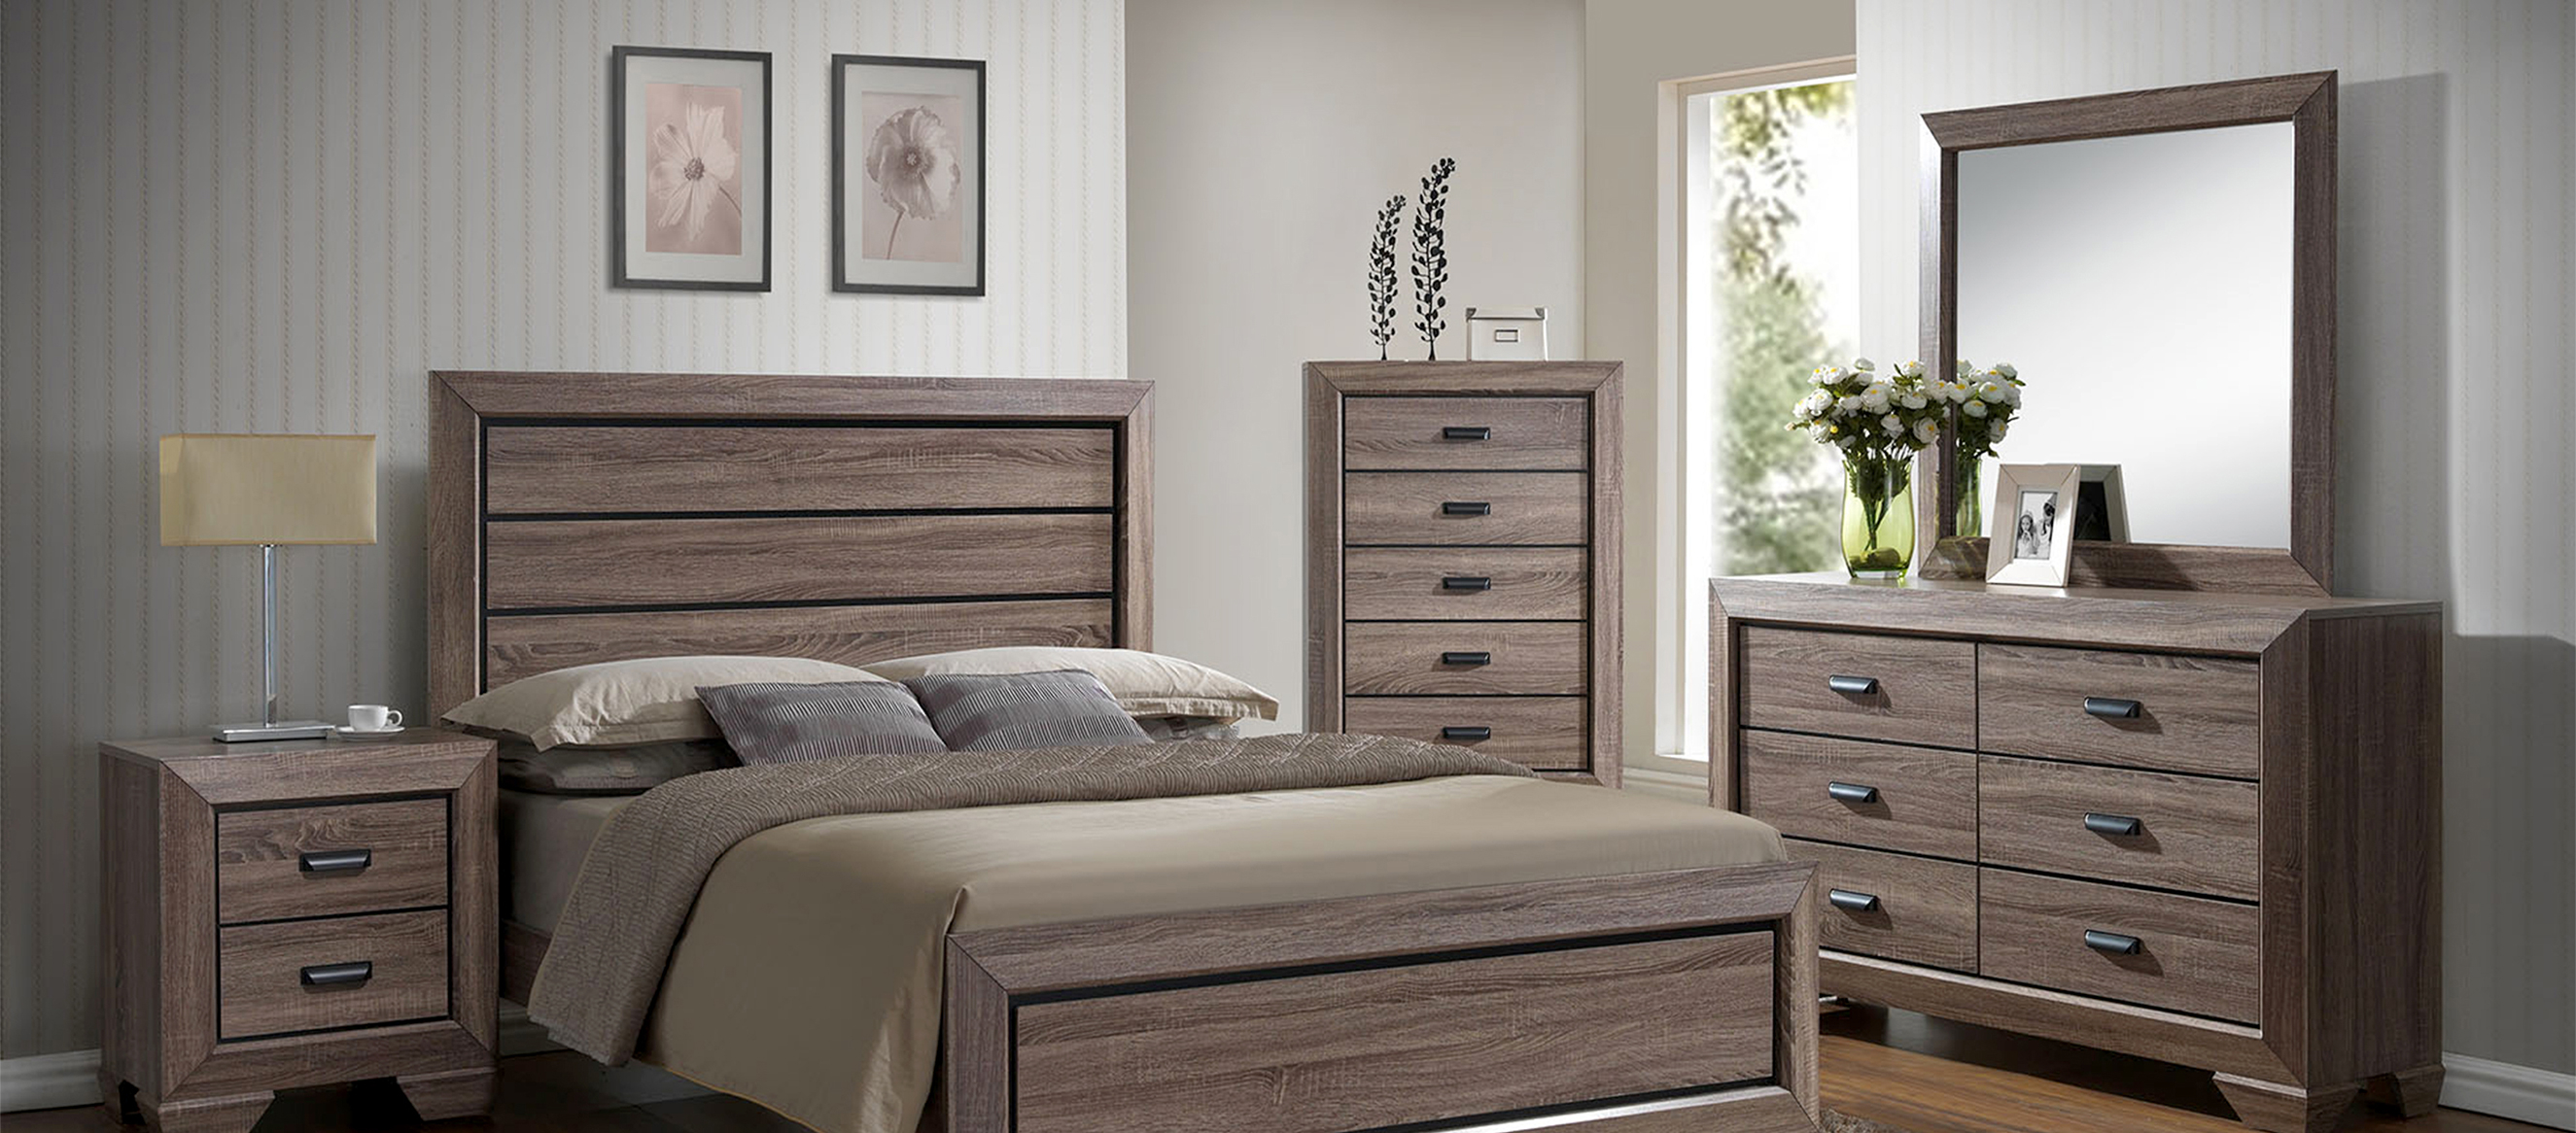 Cairo Range Bedroom Furniture